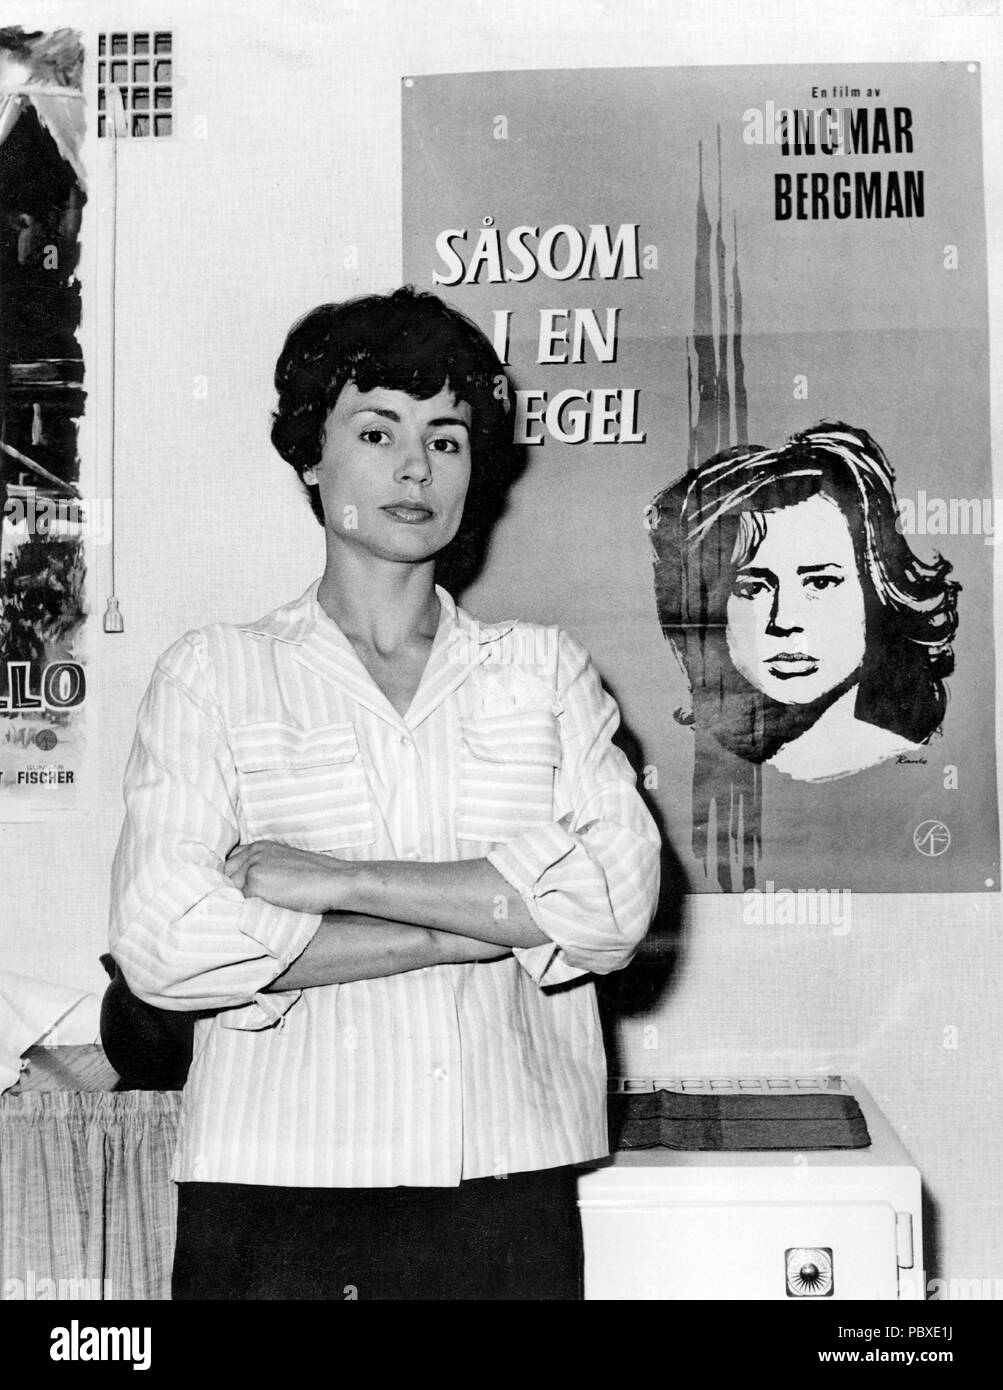 Ingmar Bergman. 1918-2007.  Swedish film director. Here the movie poster for Through a Glass Darkly and actress Harriet Andersson who plays a leading role in the film. 1962 Stock Photo